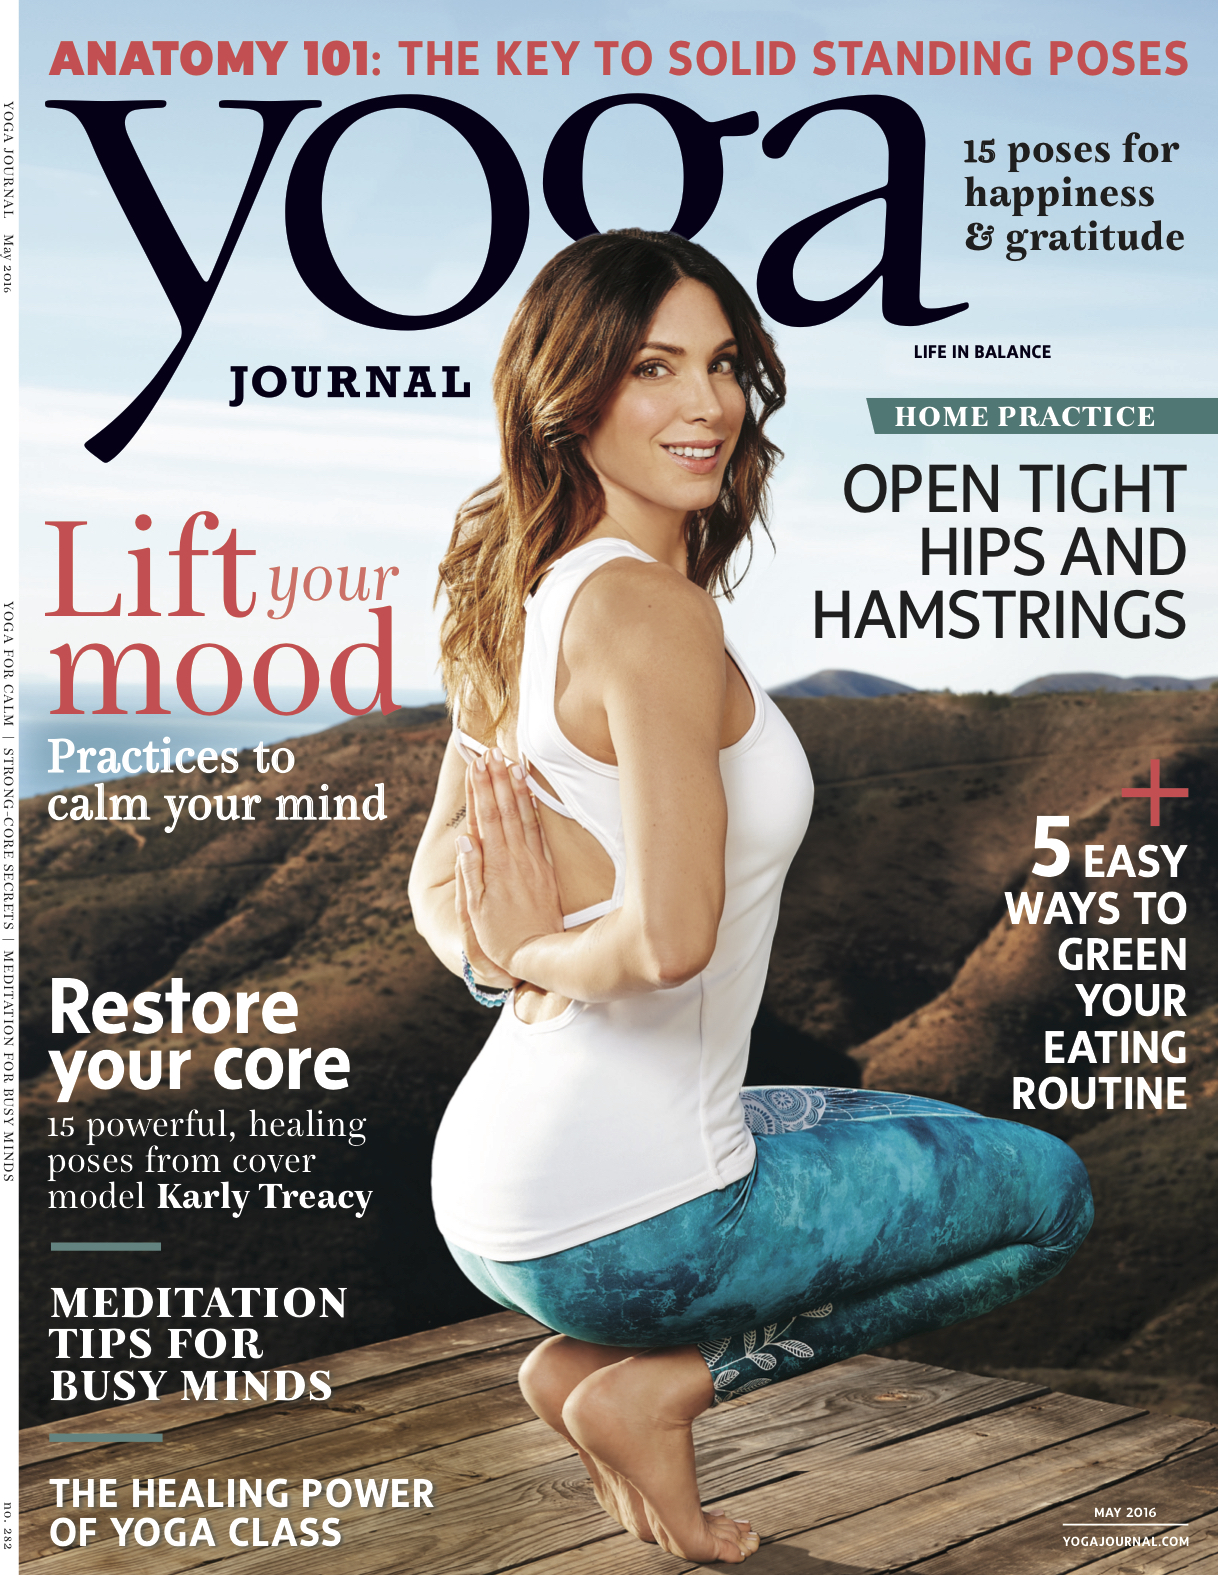 YogaJournal_May16 Cover.jpg